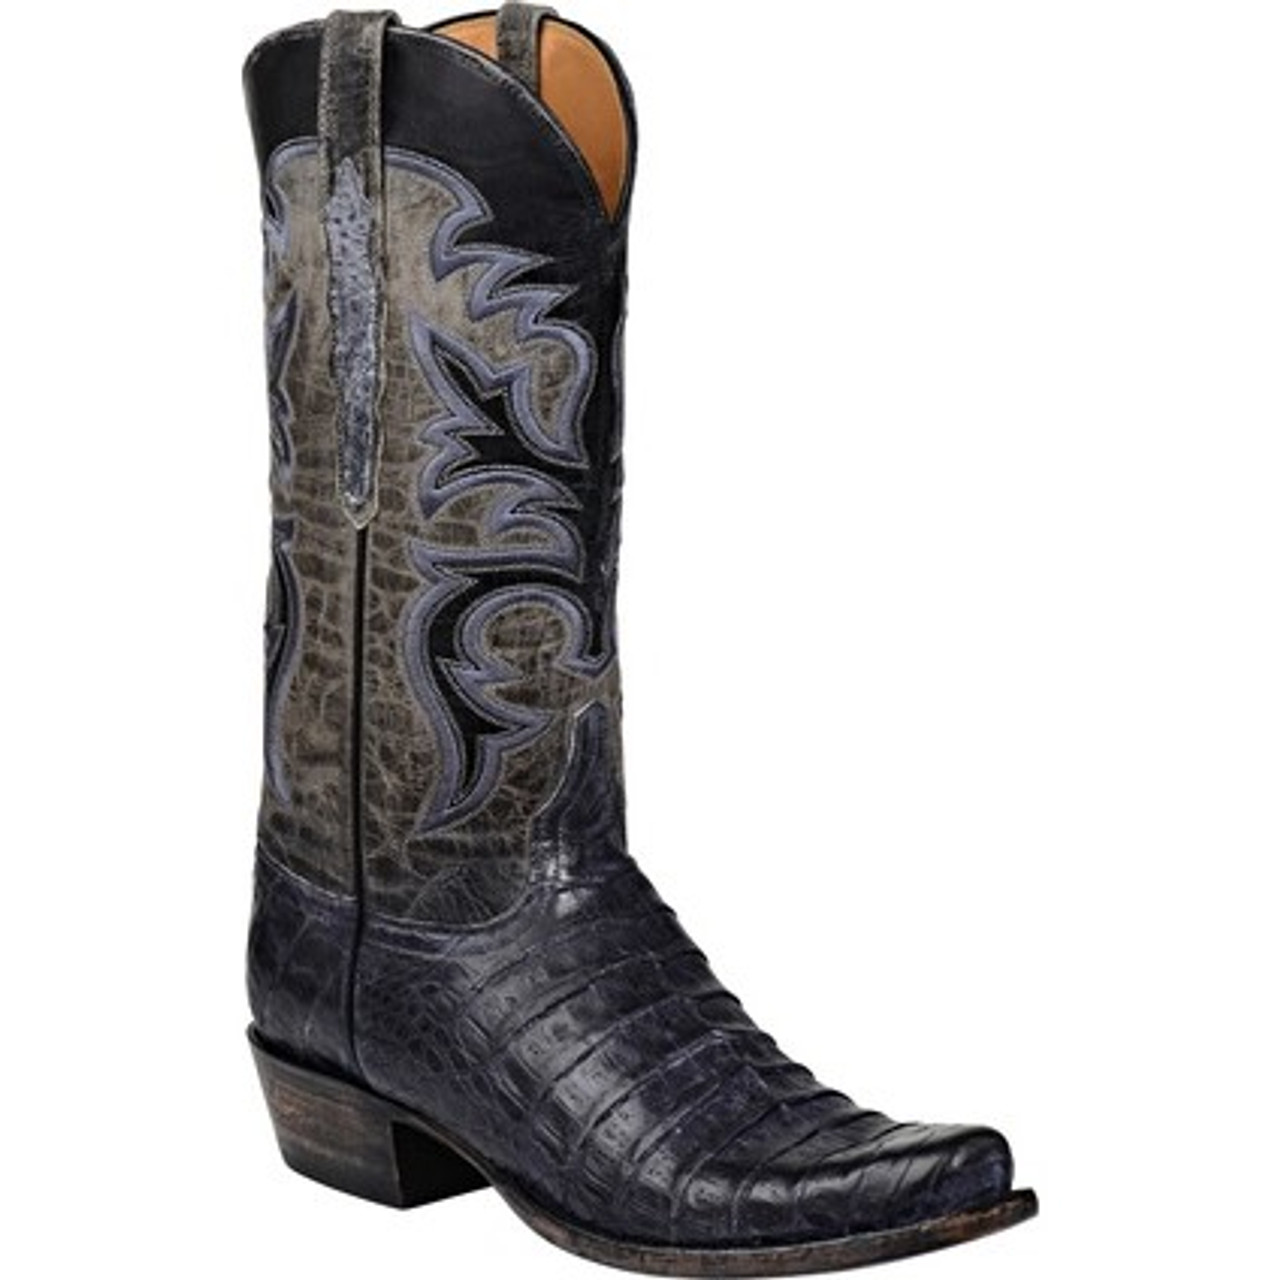 4a634500bbe Lucchese Men's Boots - Classic Hand Made - Black - Belly Caiman Crocodile